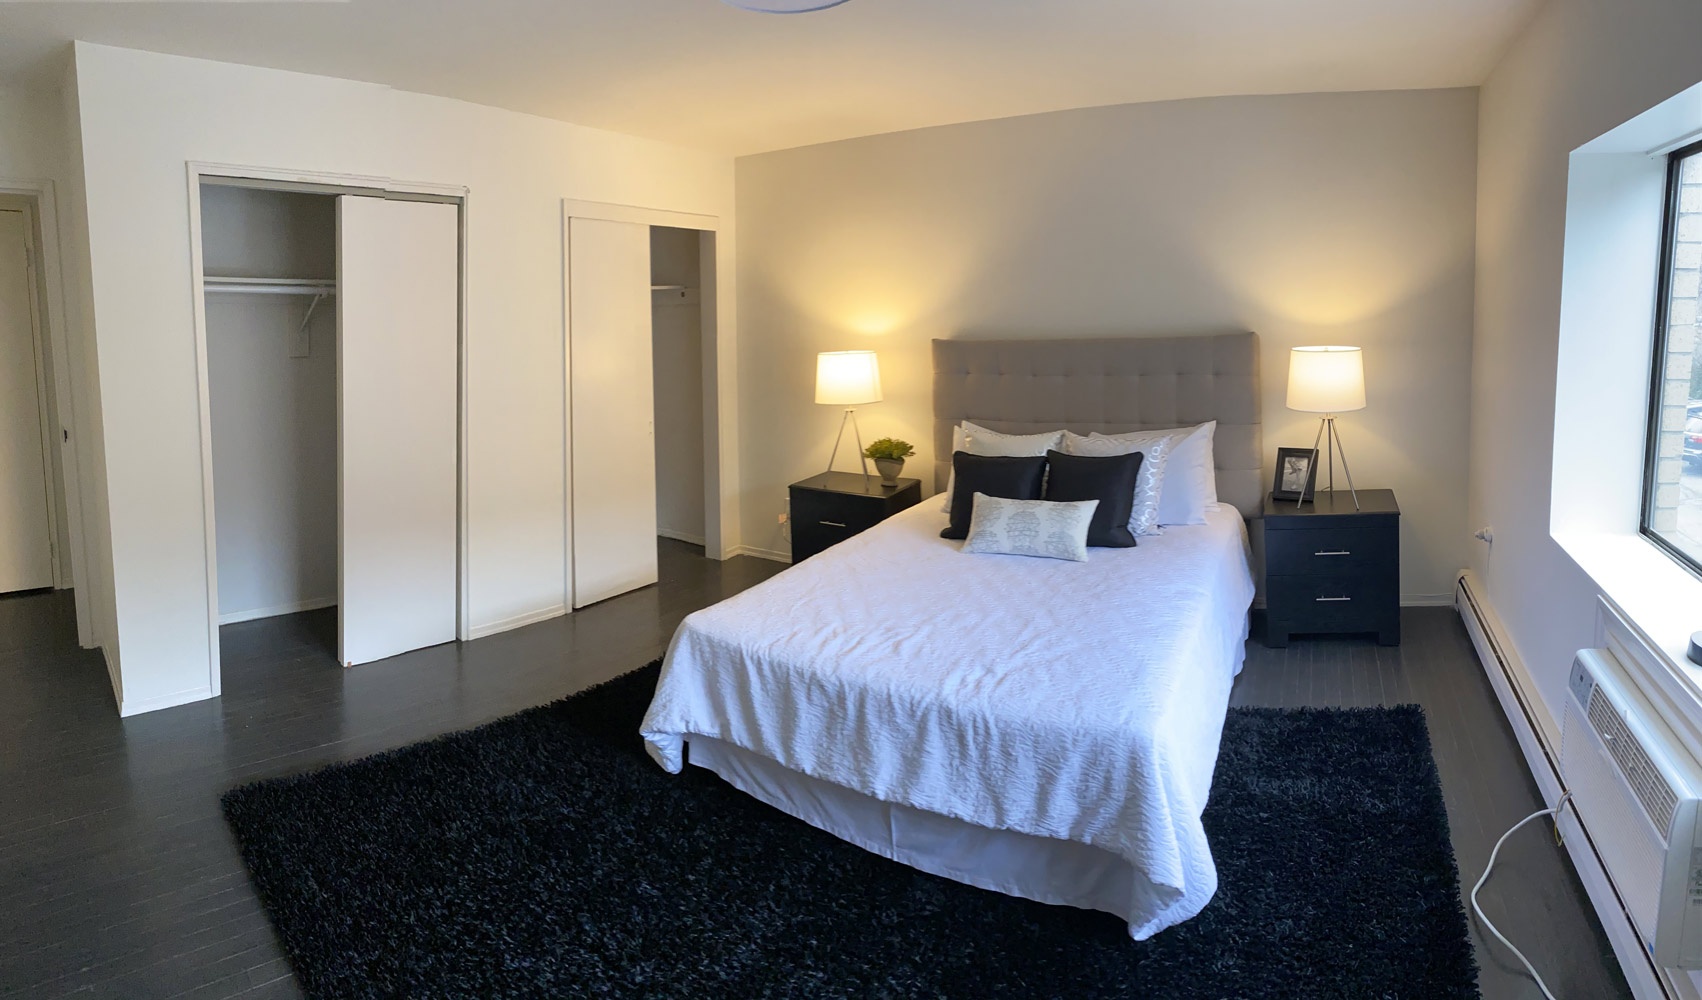 Cozy Bedroom at Riverview at Nyack Apartments in Nyack, New York